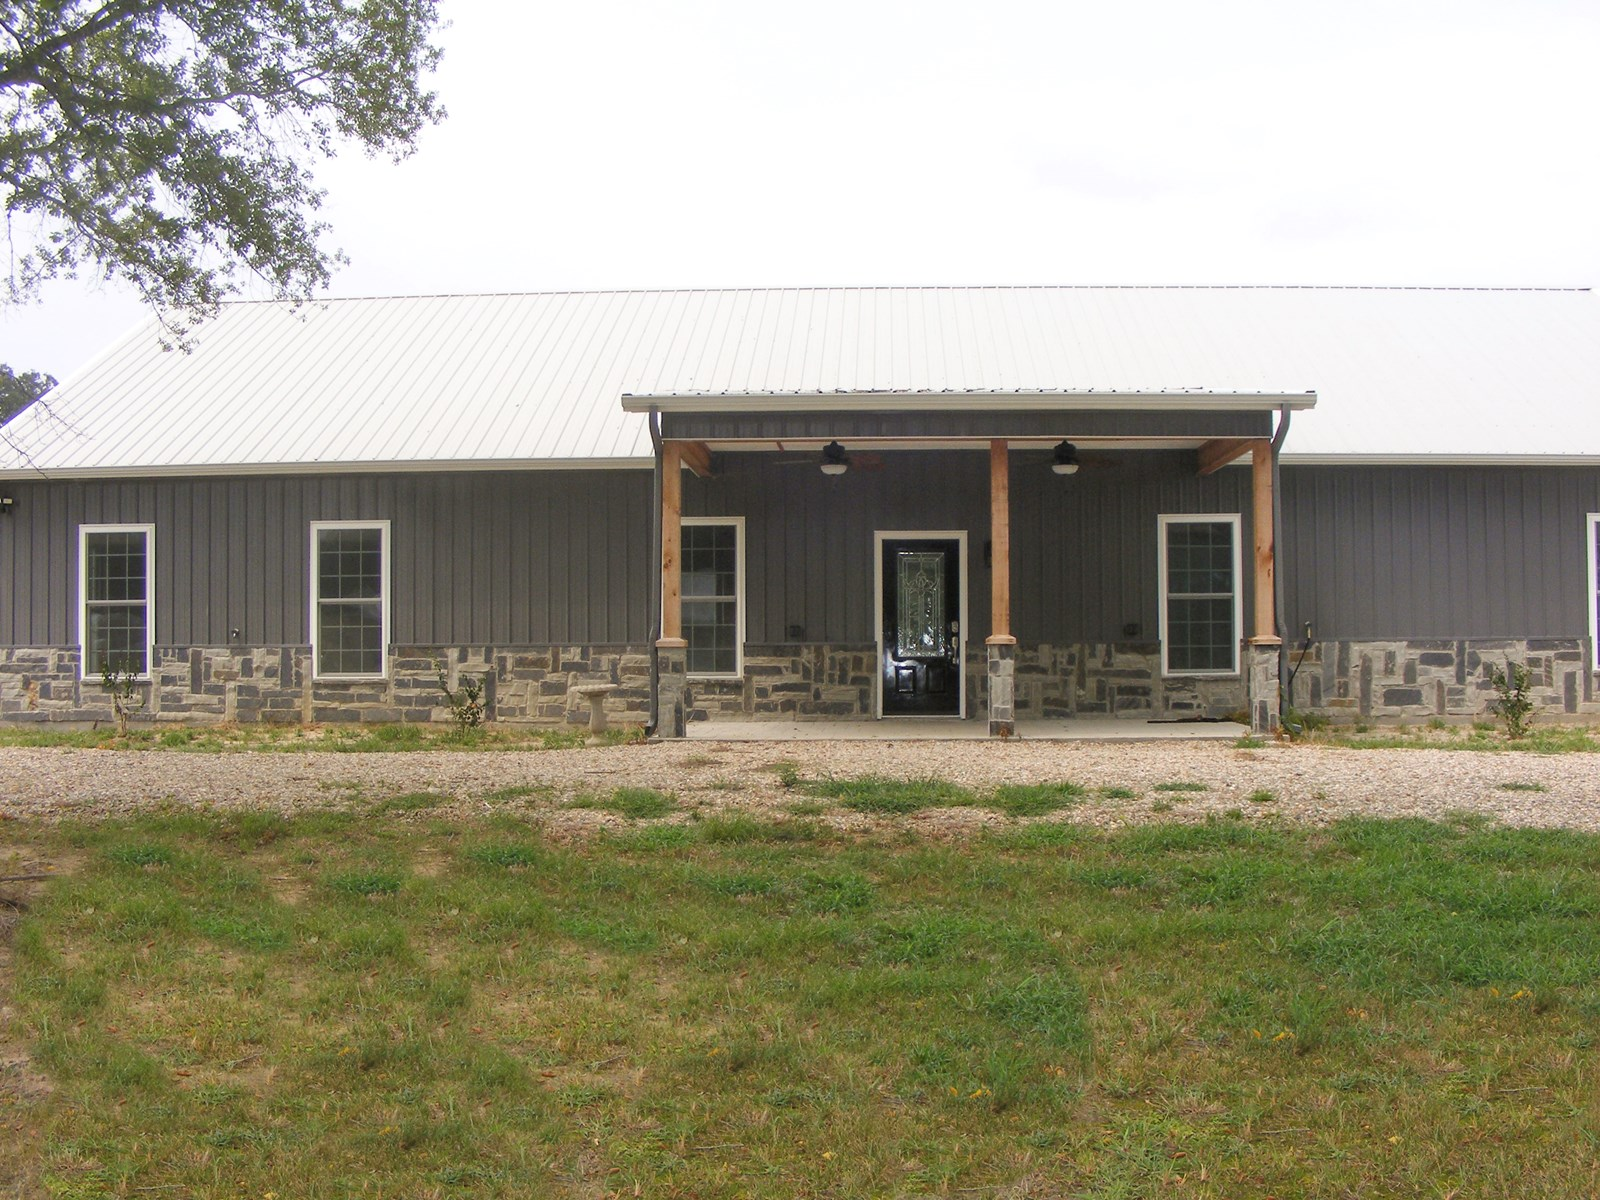 Astounding Custom Built Ranch Home For Sale In Ne Tx United Country Download Free Architecture Designs Scobabritishbridgeorg